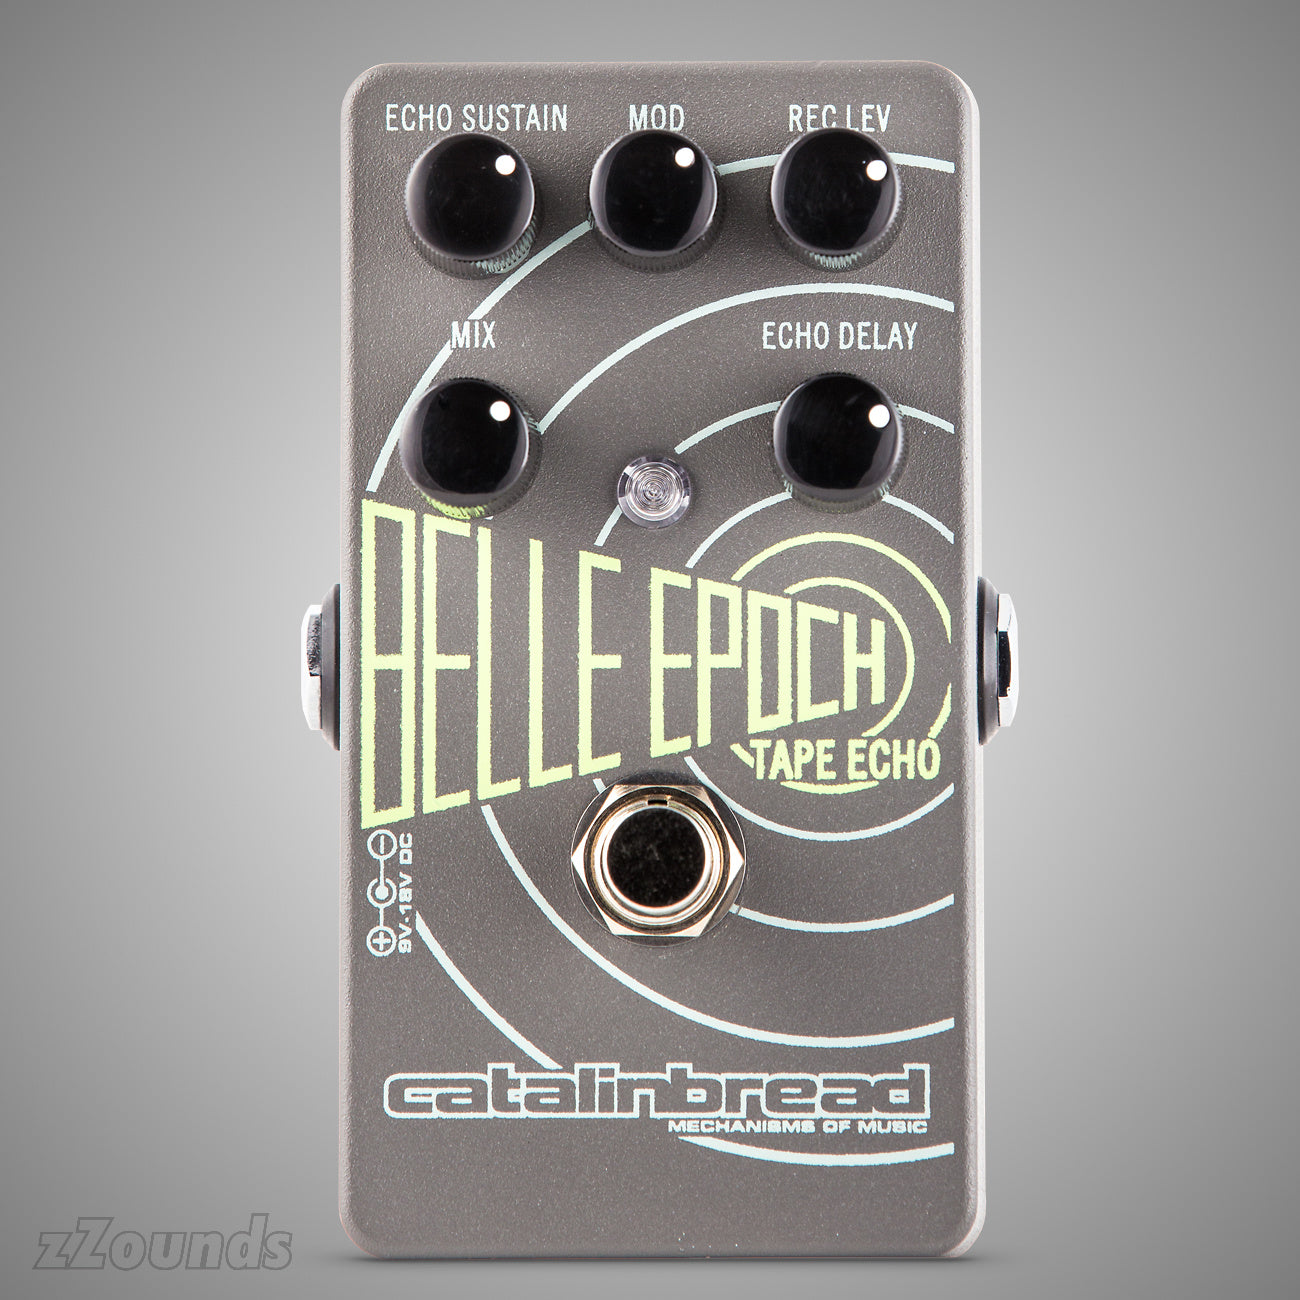 Catalinbread Belle Epoch EP-3 Tape Echo Recreation Pedal